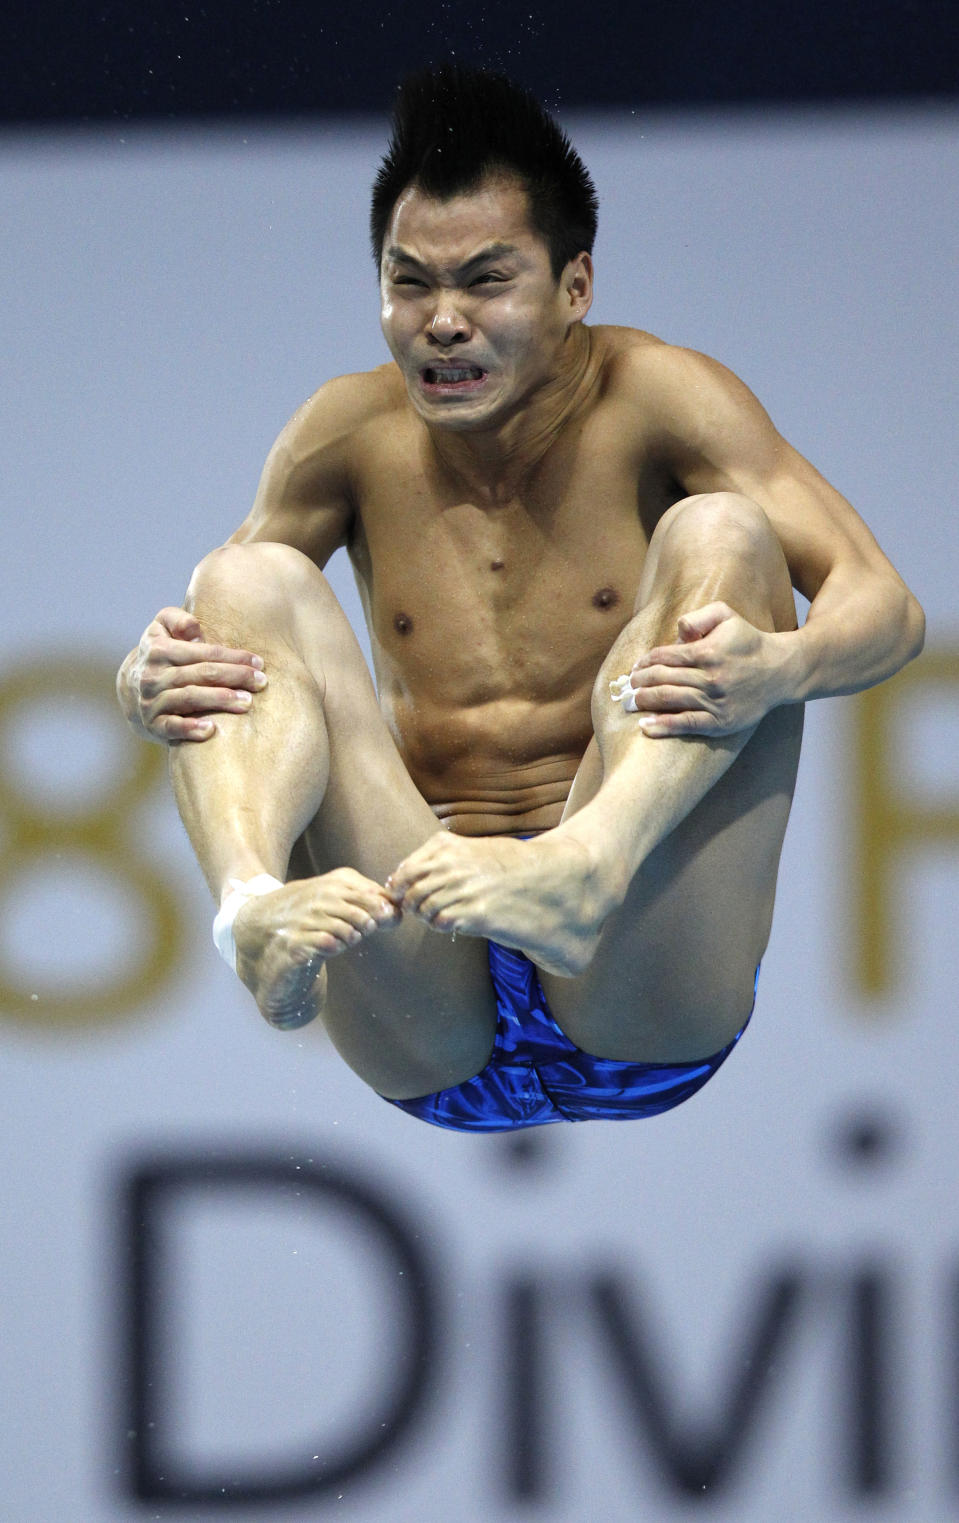 He Chong of China dives during the final of the Men's 3m Springboard at the FINA Diving World Cup at the Olympic Aquatics Centre in London February 22, 2012. He won the event. REUTERS/Andrew Winning (BRITAIN - Tags: SPORT DIVING OLYMPICS)